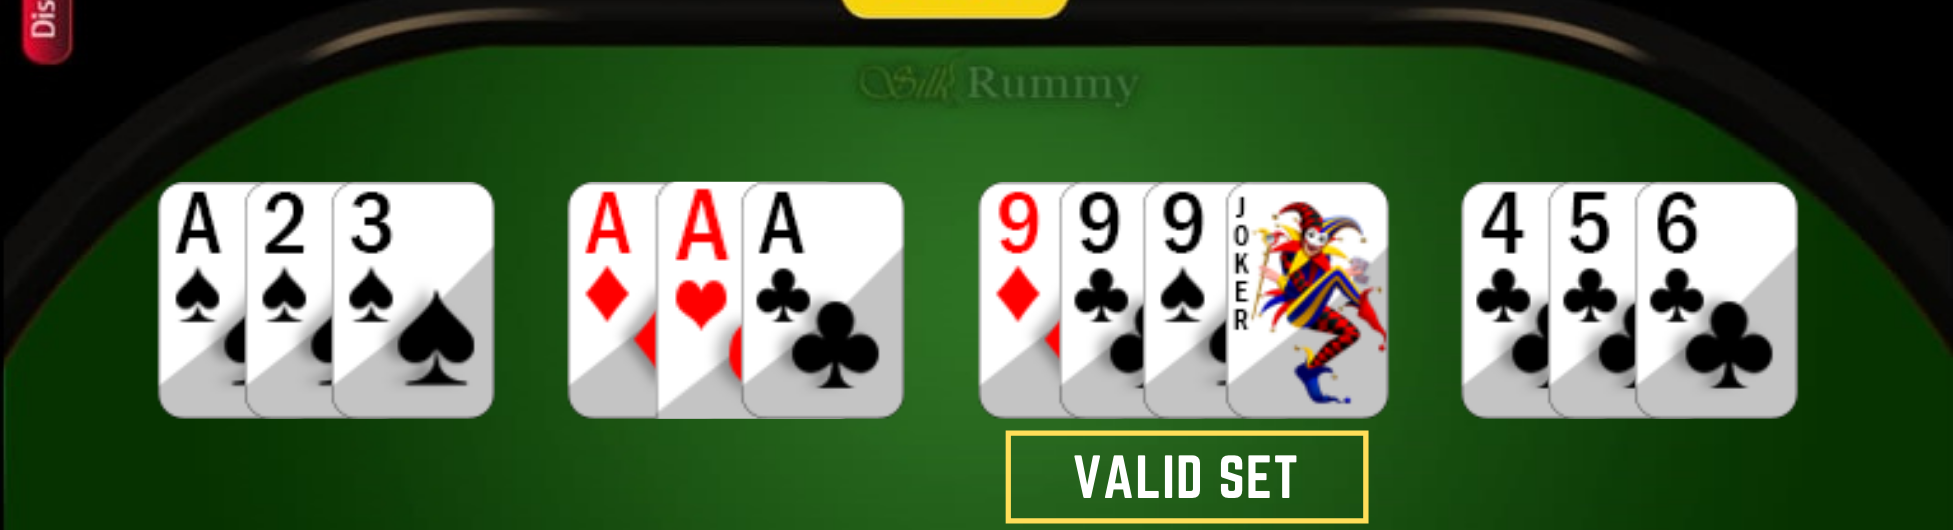 How to Play Rummy- Learn Rummy Rules- Rummy valid set with printed joker